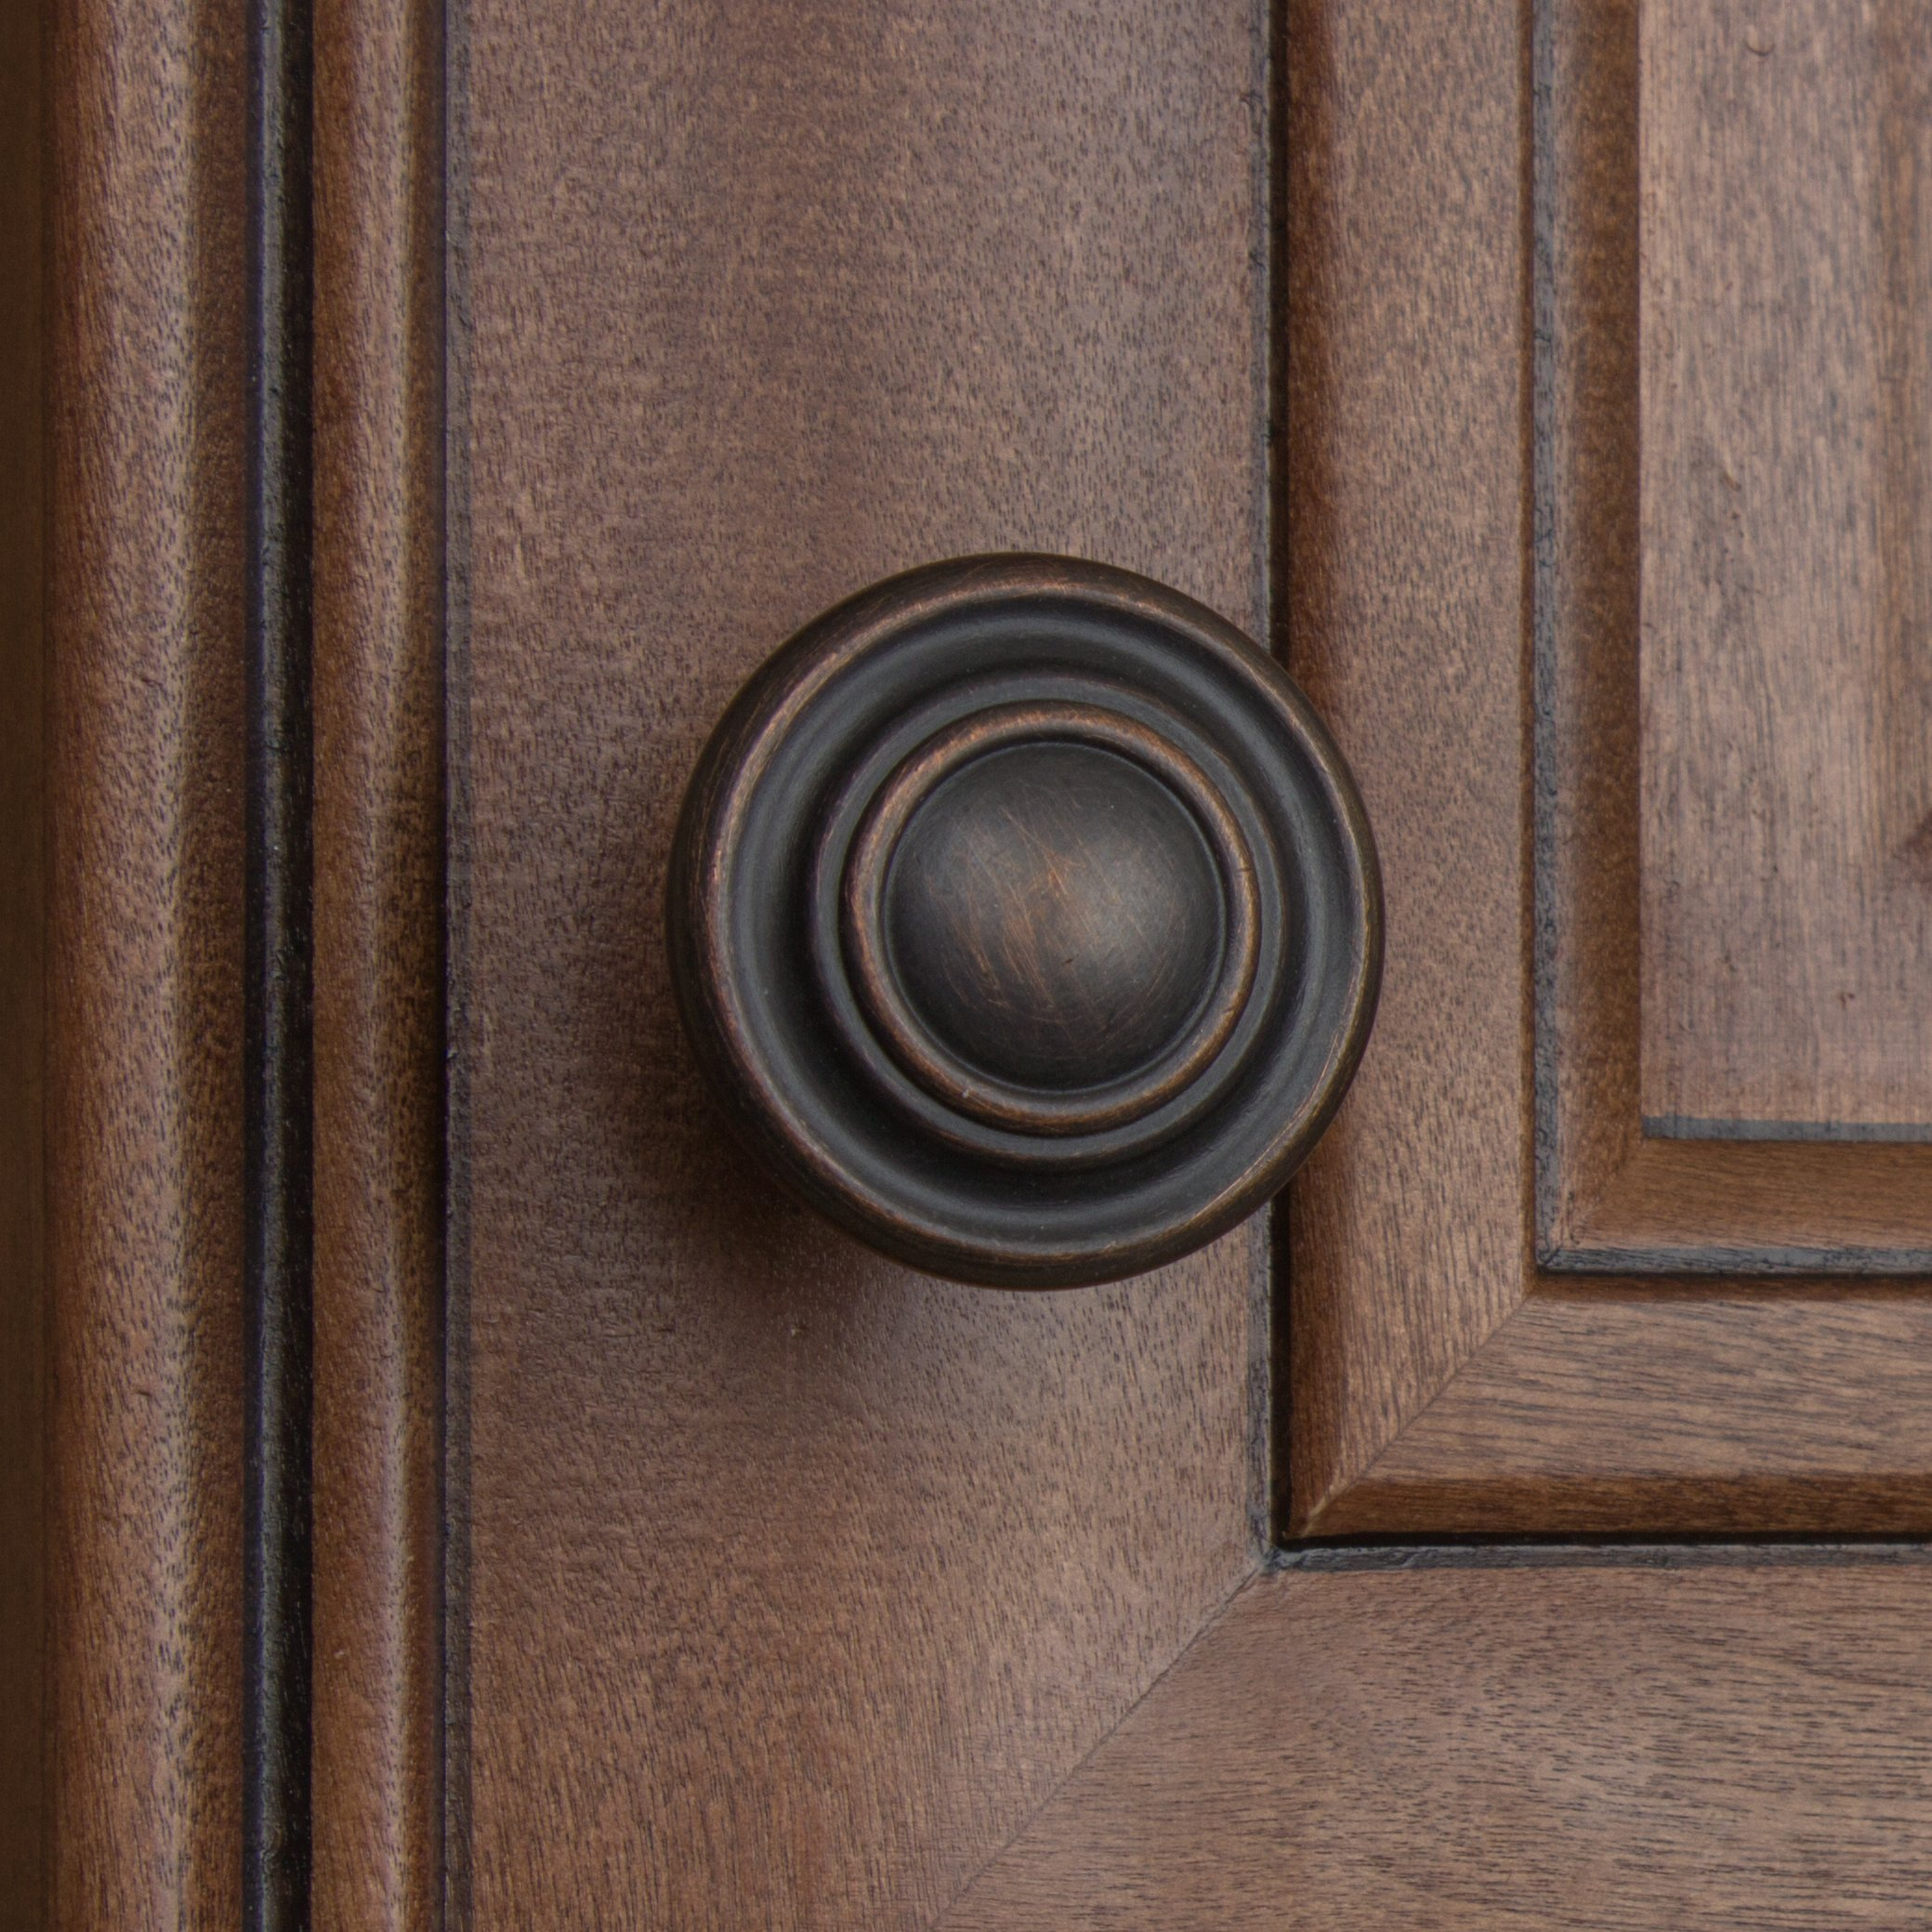 GlideRite Hardware 5415-ORB-25 1.25 inch Diameter Classic Round Ring Oil Rubbed Bronze Cabinet Knobs 25 Pack by GlideRite Hardware (Image #5)